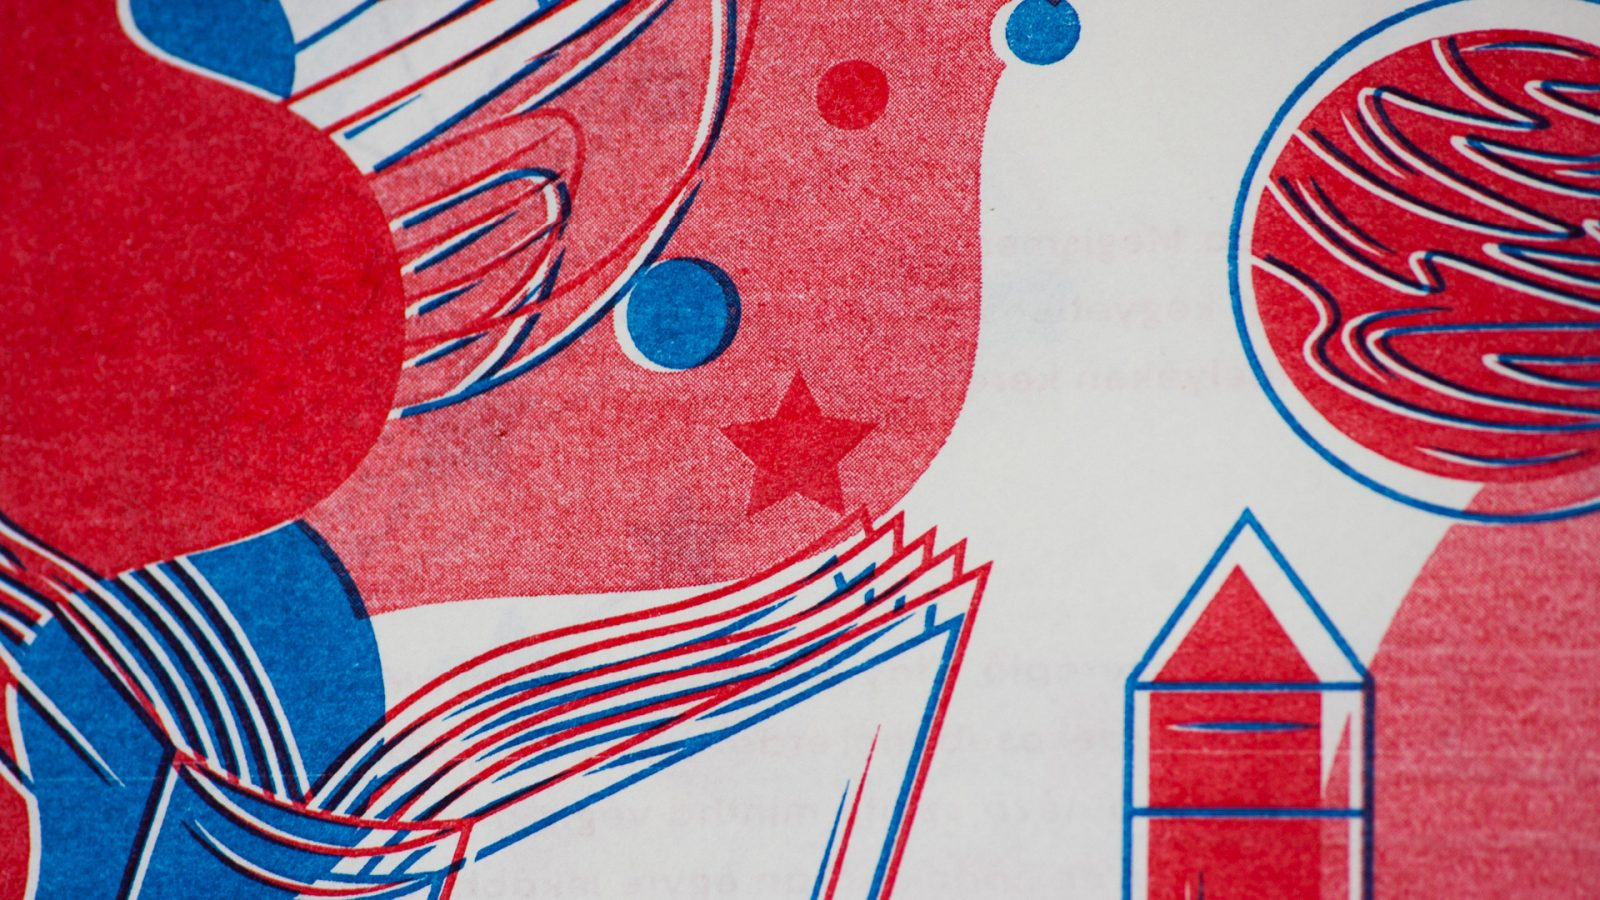 Risograph Publications by the Students of Visual Arts Institute Hungary